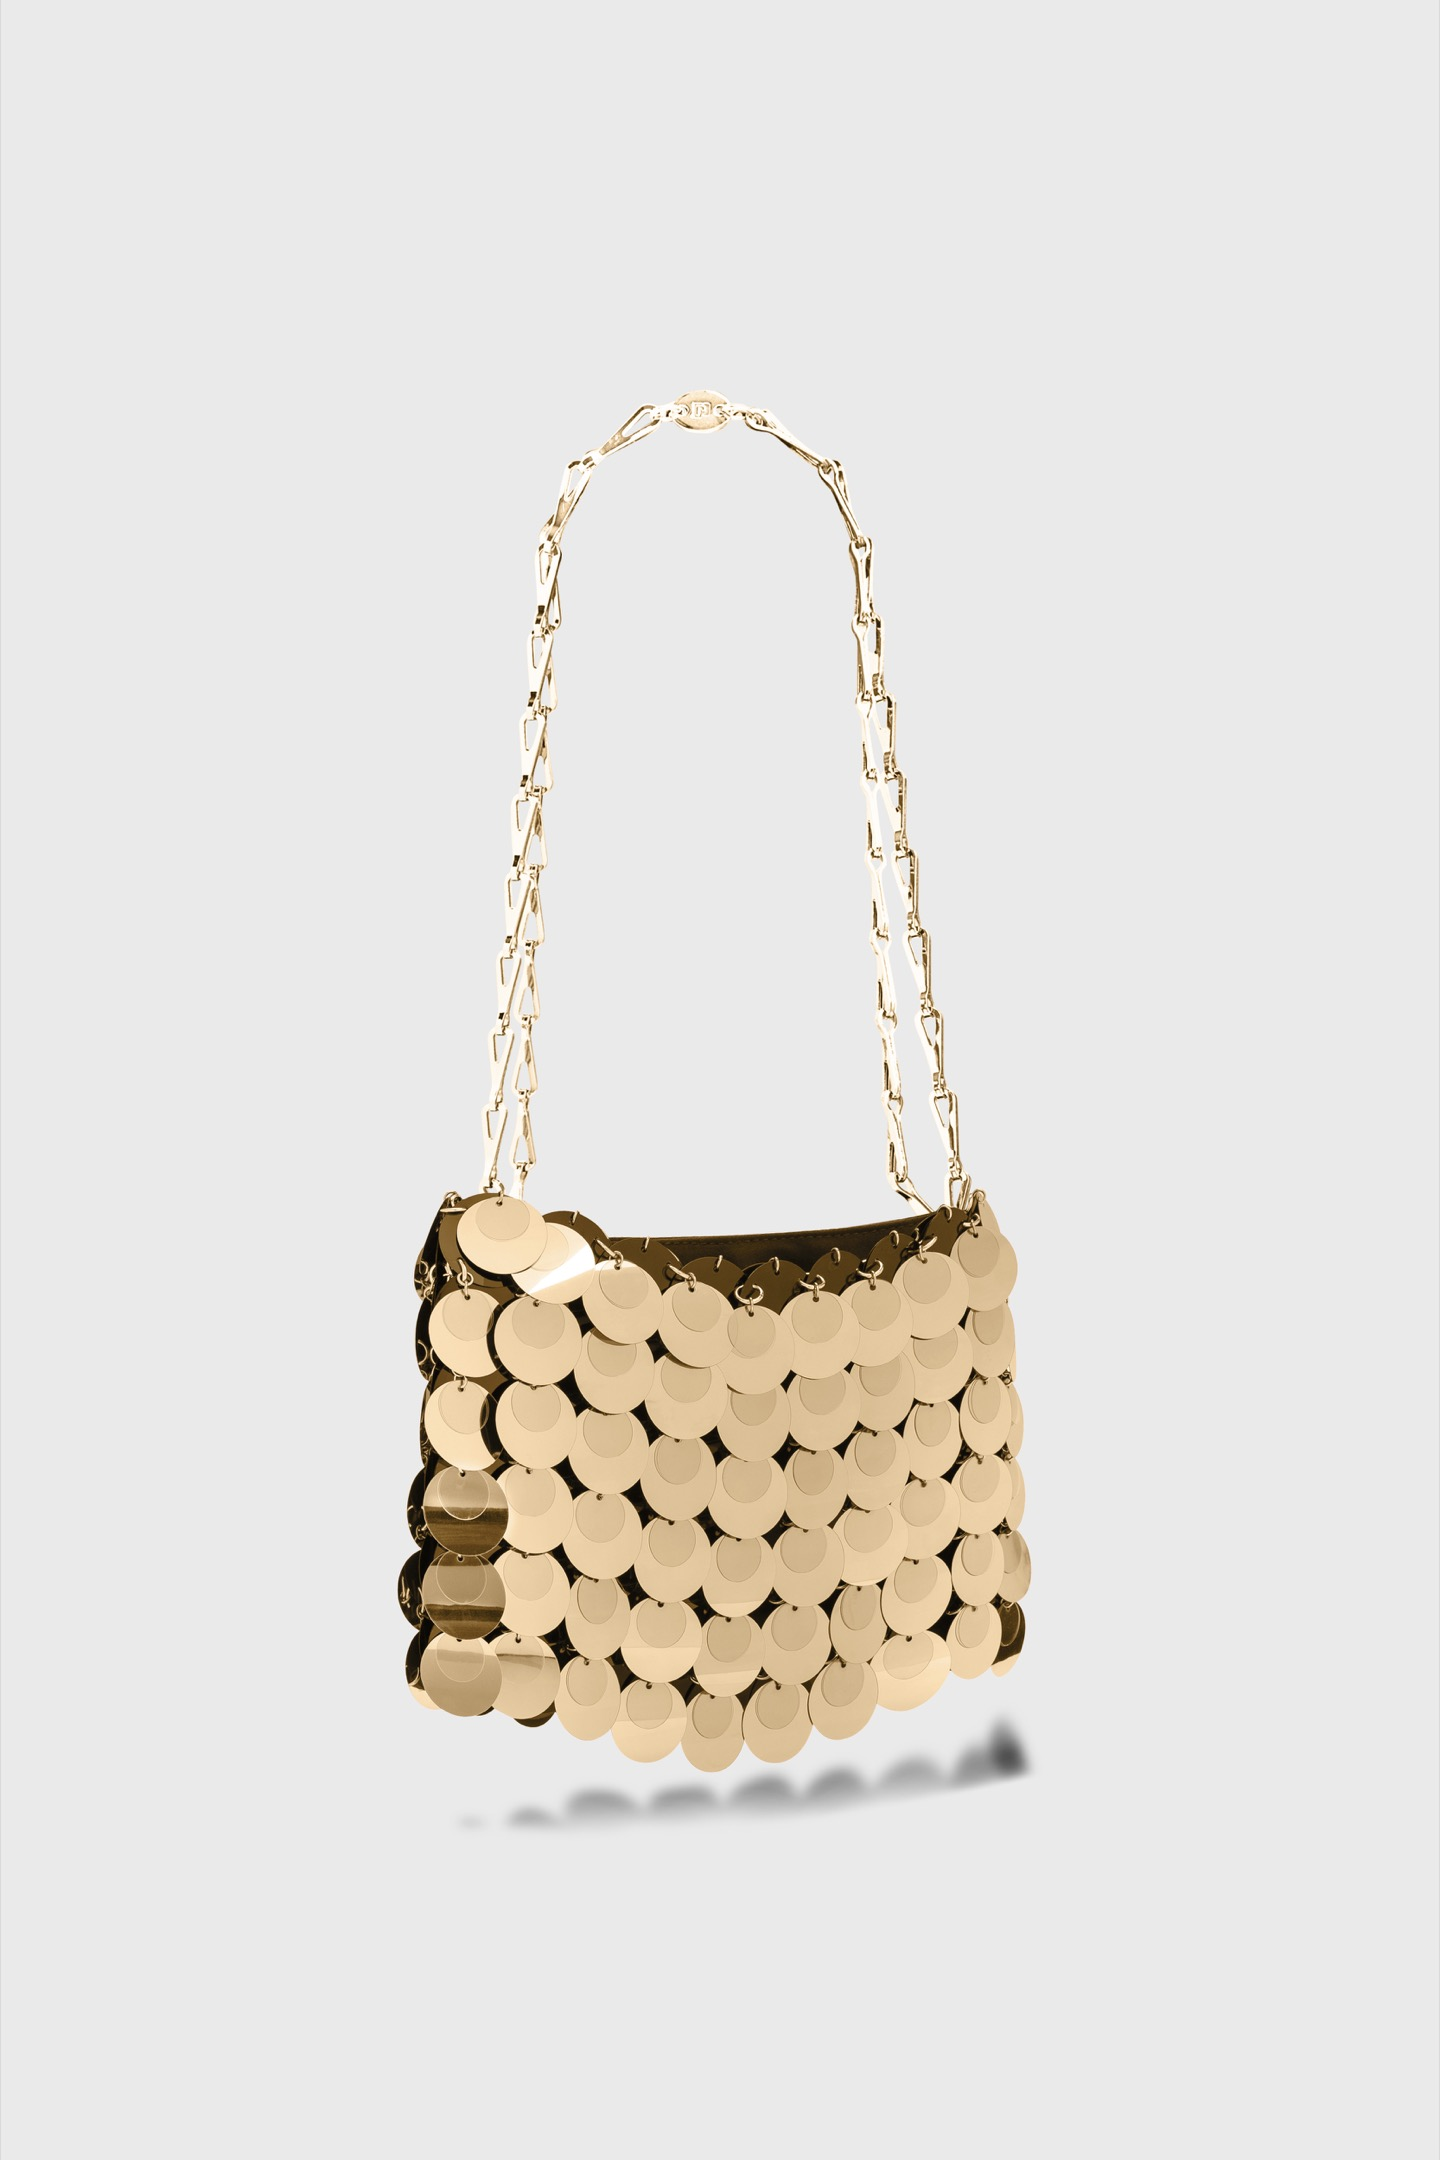 The Iconic 1969 Bag gold sparkle - The Iconic 1969 Bag gold sparkle - Paco Rabanne